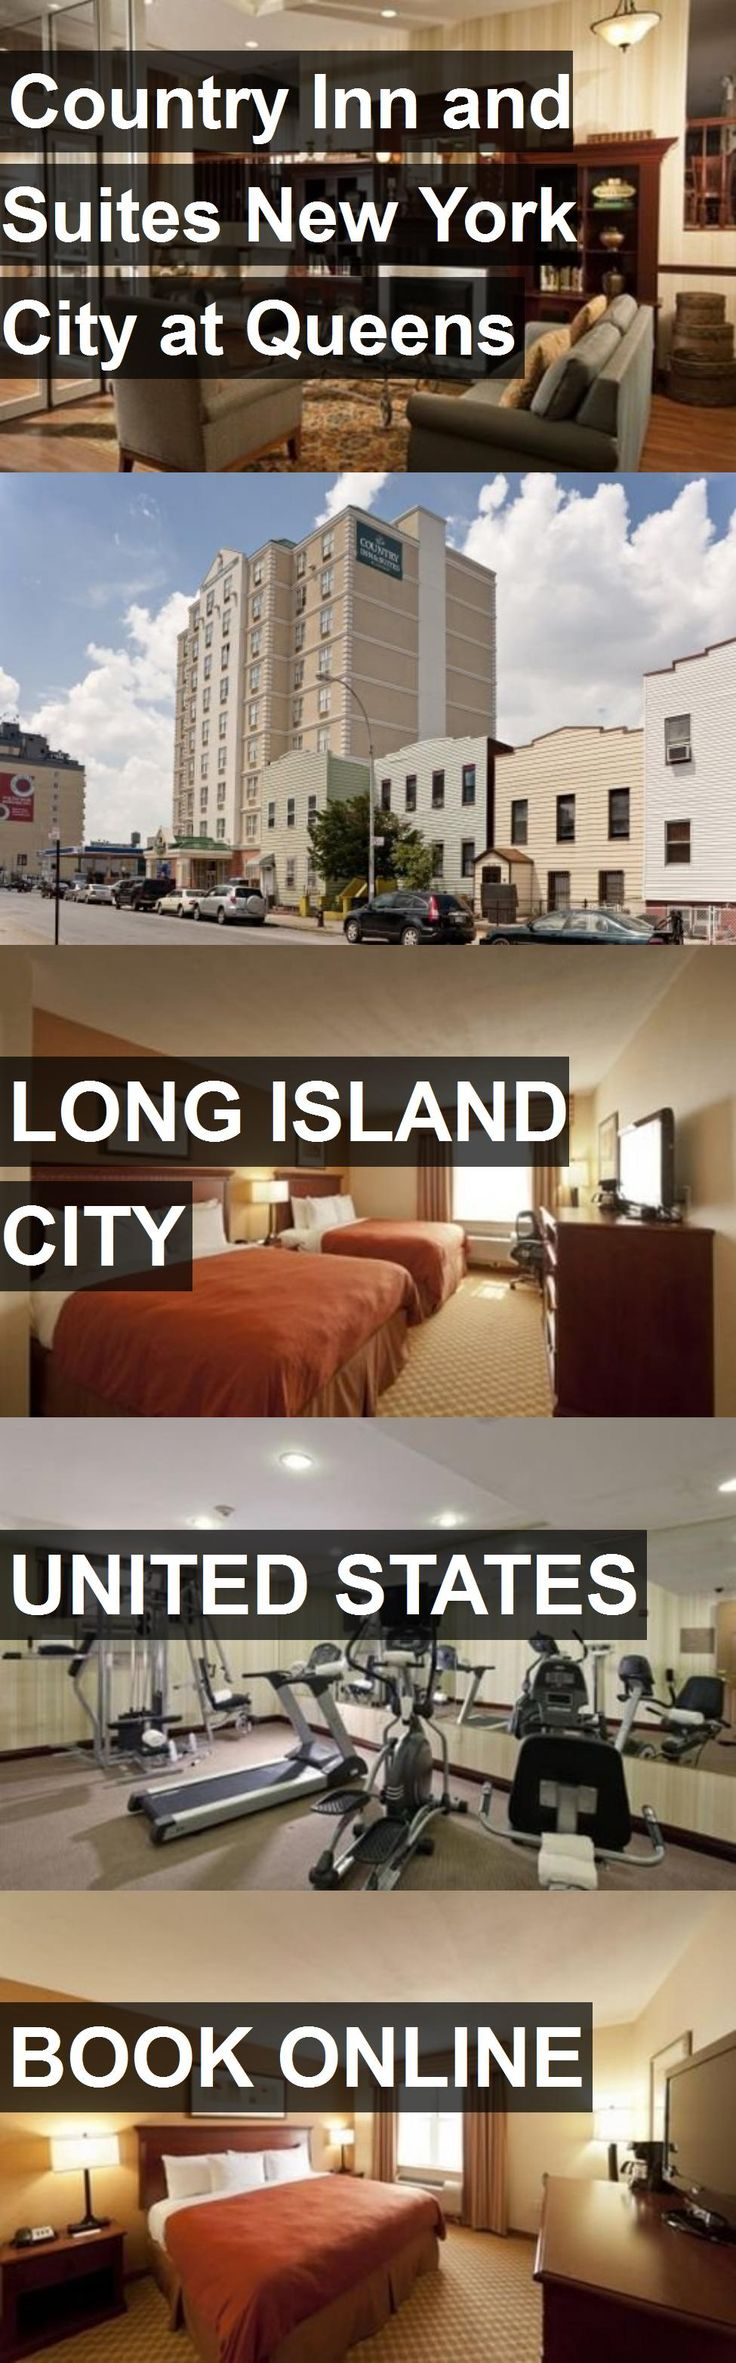 Hotel Country Inn and Suites New York City at Queens in Long Island City, United States. For more information, photos, reviews and best prices please follow the link. #UnitedStates #LongIslandCity #travel #vacation #hotel